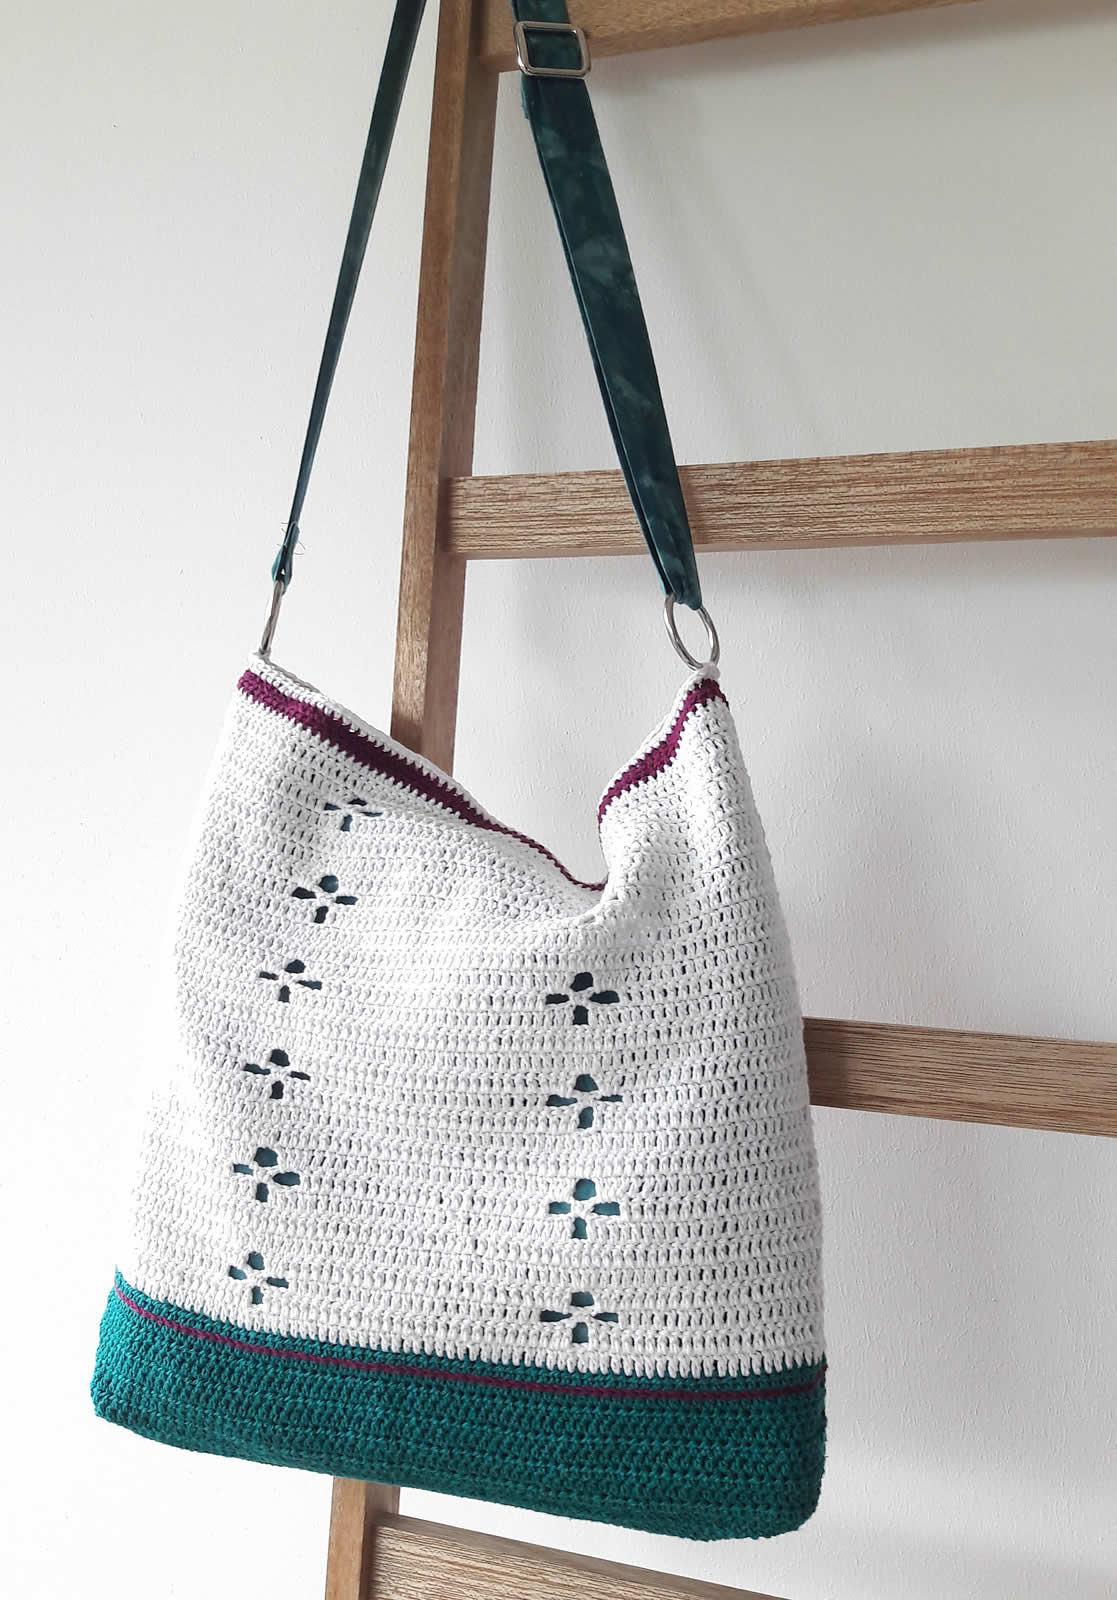 Funky Fifties Bag (Call the midwife bag), crochet pattern and sewing instructions | Happy in Red